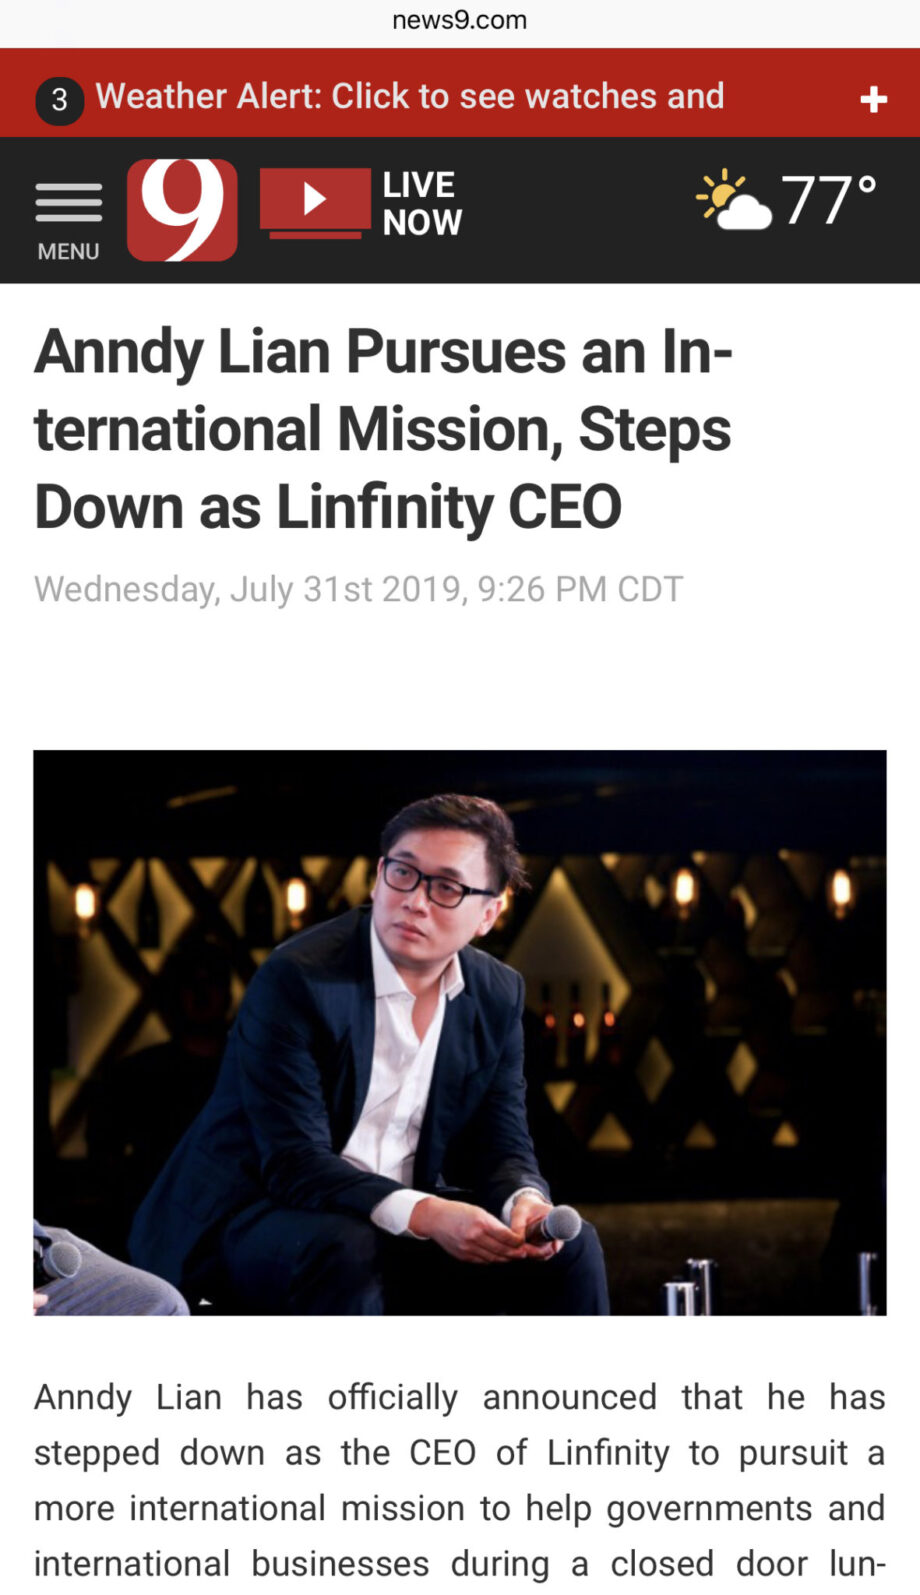 News9/ Anndy Lian Steps Down as Linfinity CEO, Pursues an International Mission,